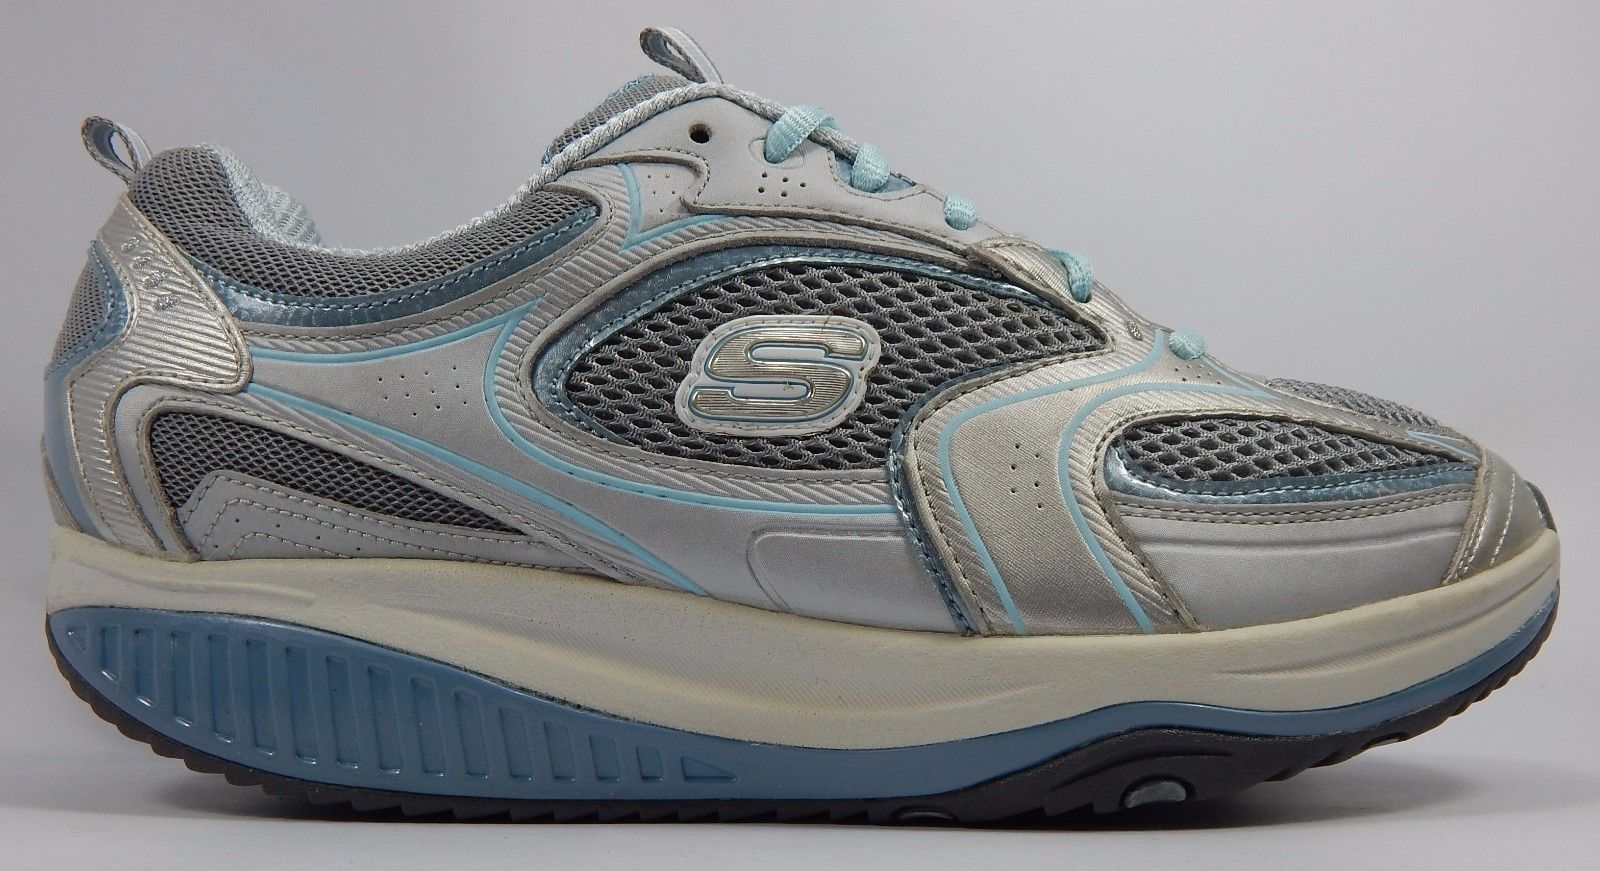 Skechers Shape Ups Women's Fitness Shoes Size US 10 M (B) EU 40 Silver Blue